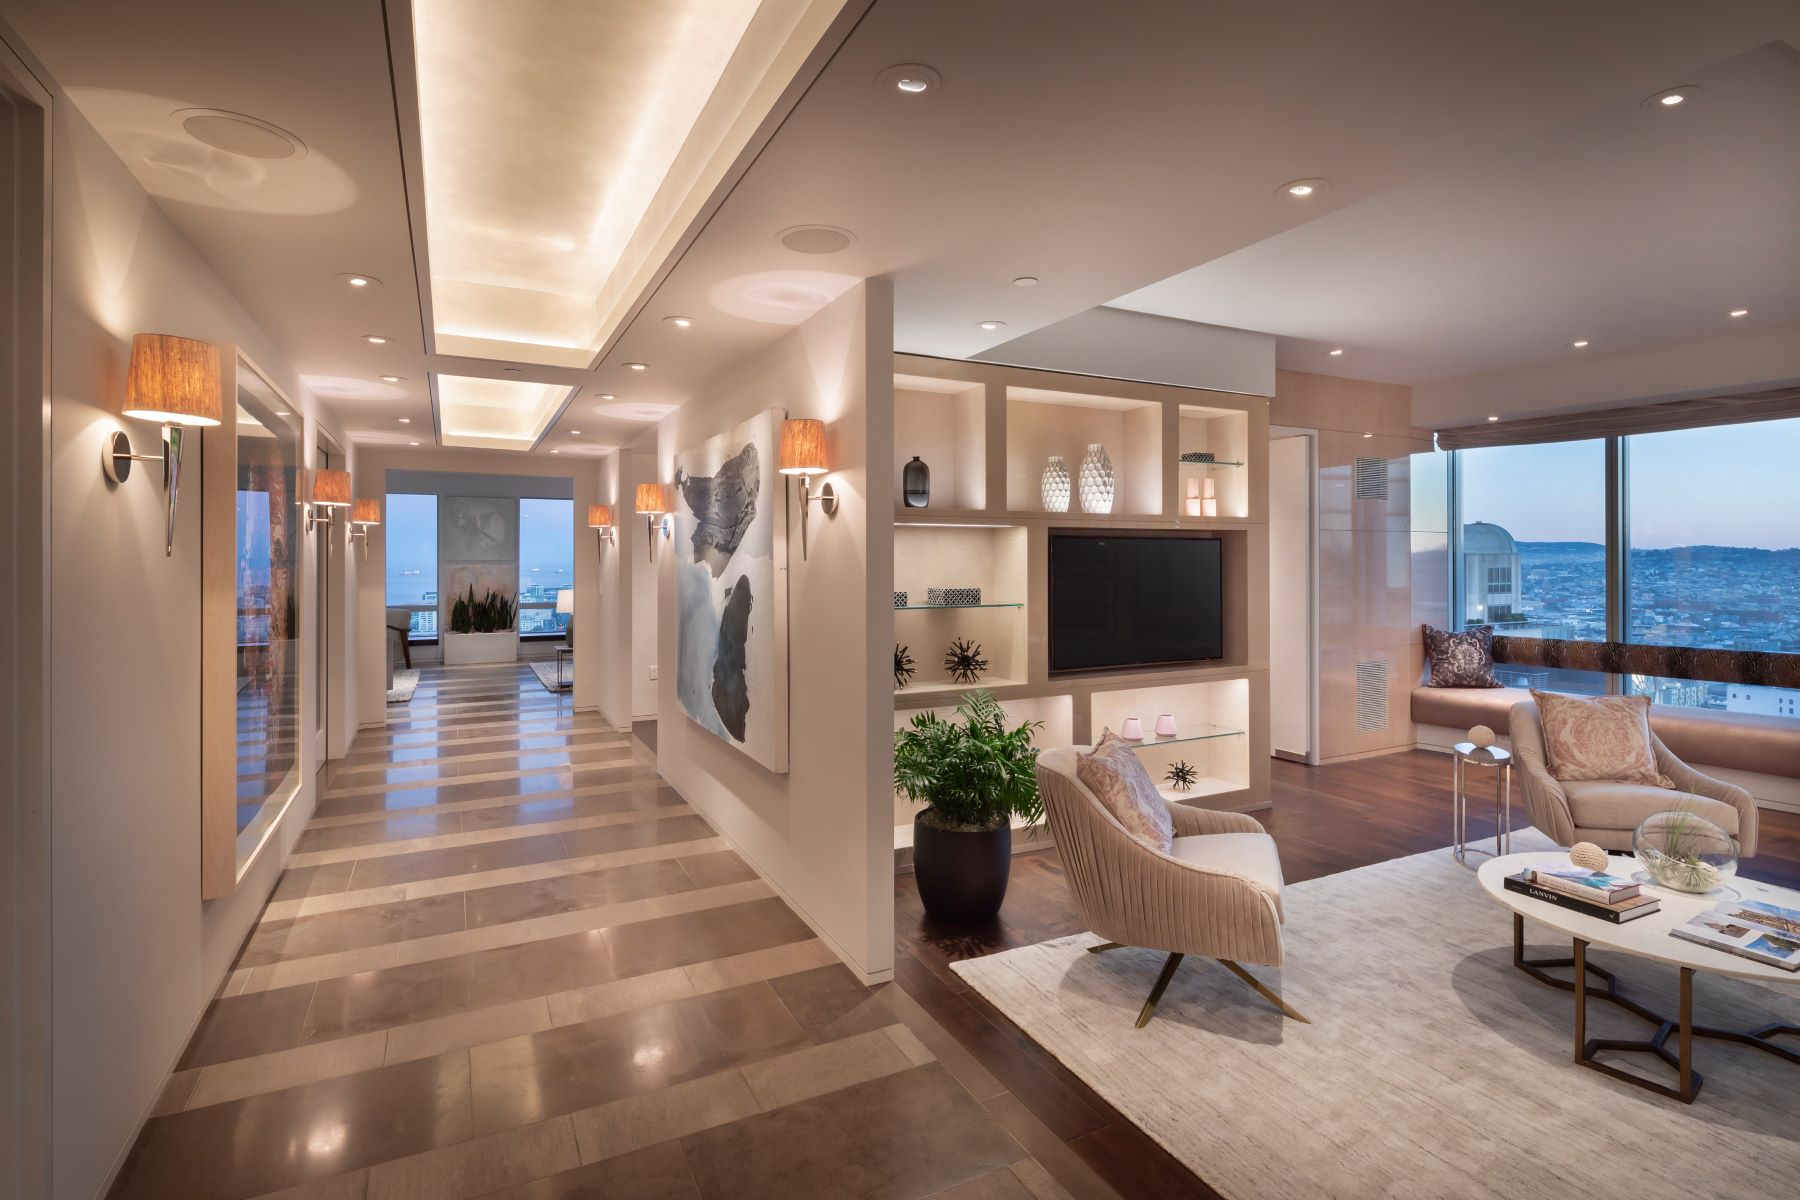 Condominiums for Sale at 4,550 SqFt Four Seasons Residence 34A 765 Market St, Apt 34A, San Francisco, California 94103 United States